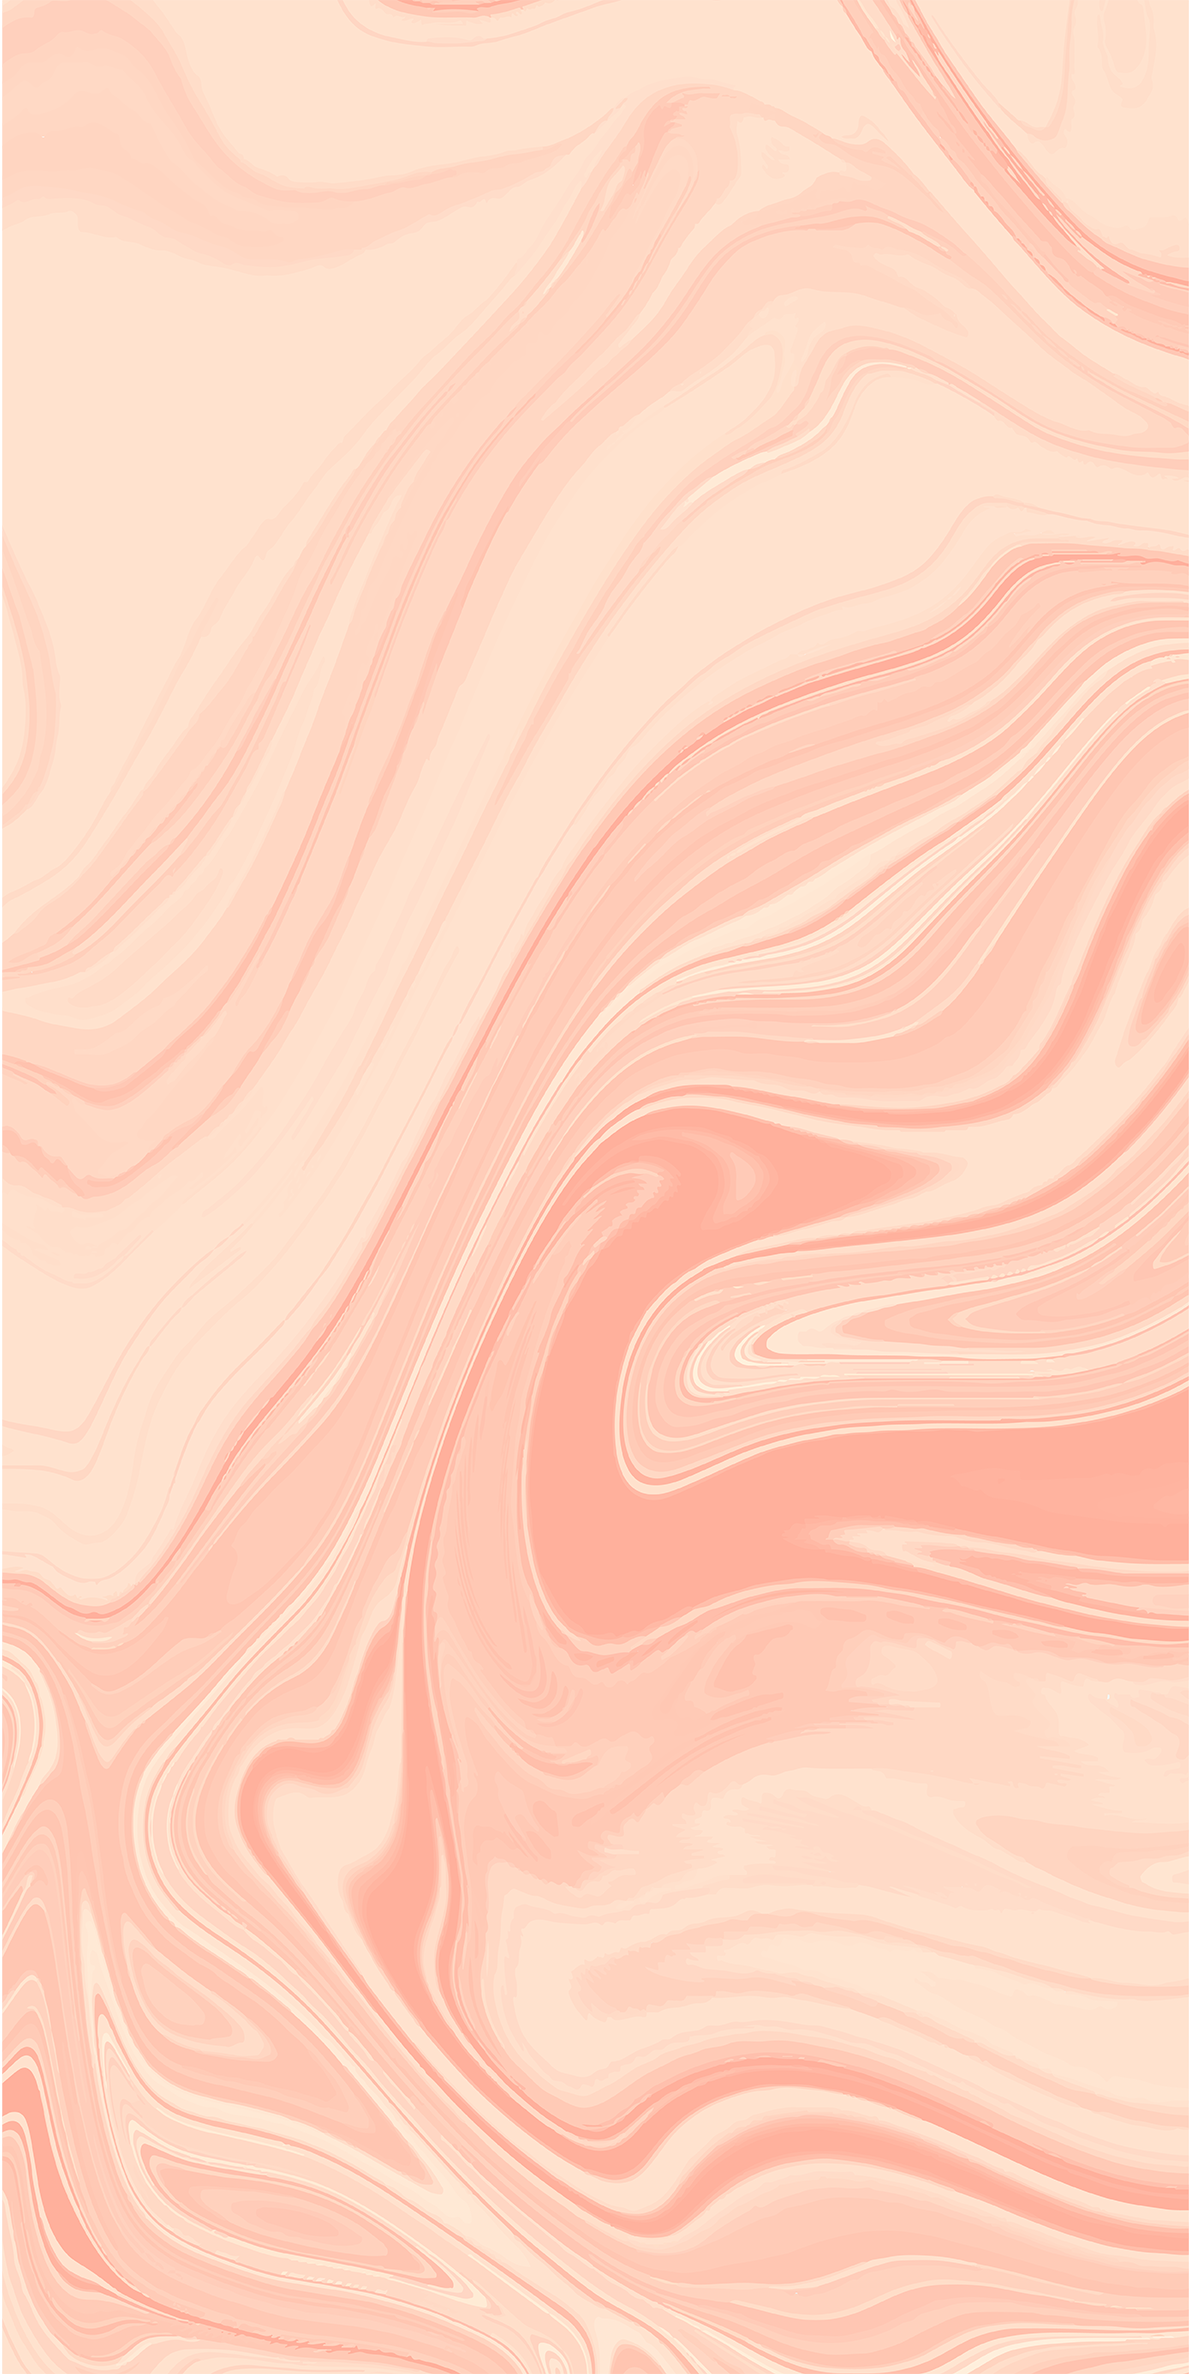 Iphone Marble Pattern Stone Wallpaper Bright Natural Flow 2019 Orange Trending Marble Iphone Wallpaper Marble Wallpaper Marble Wallpaper Phone